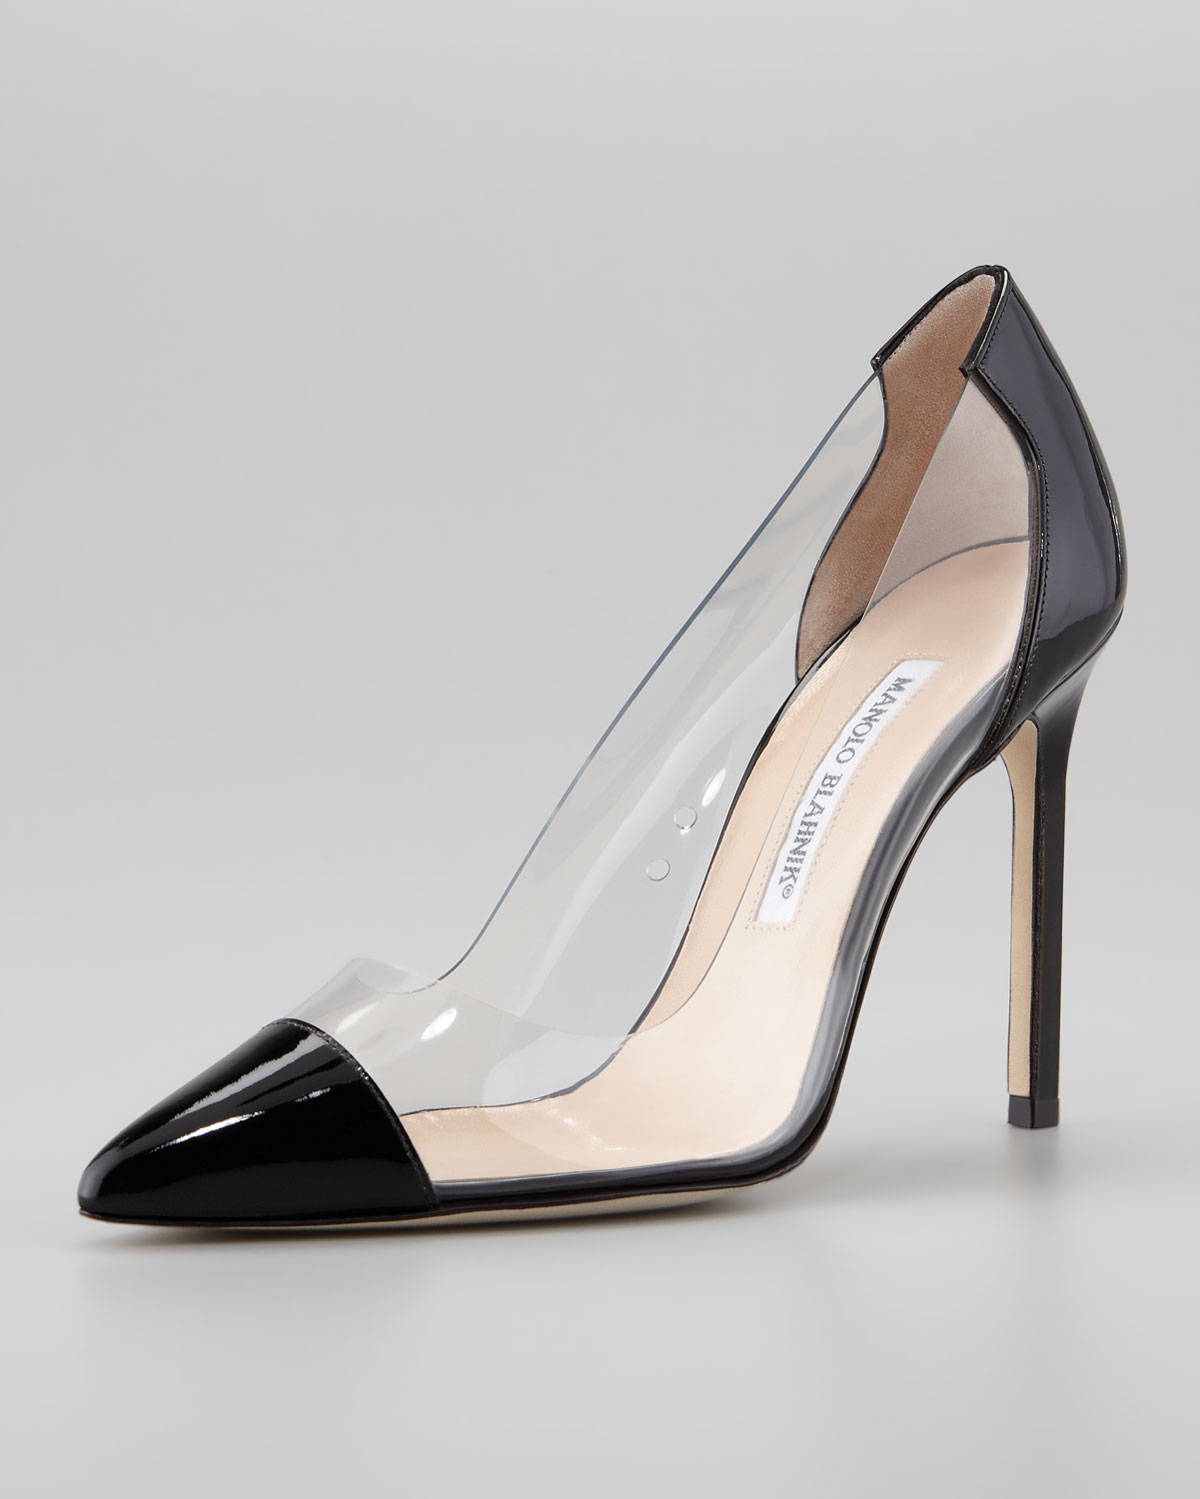 Lyst manolo blahnik pacha clear pvcpatent pump in black for Who is manolo blahnik